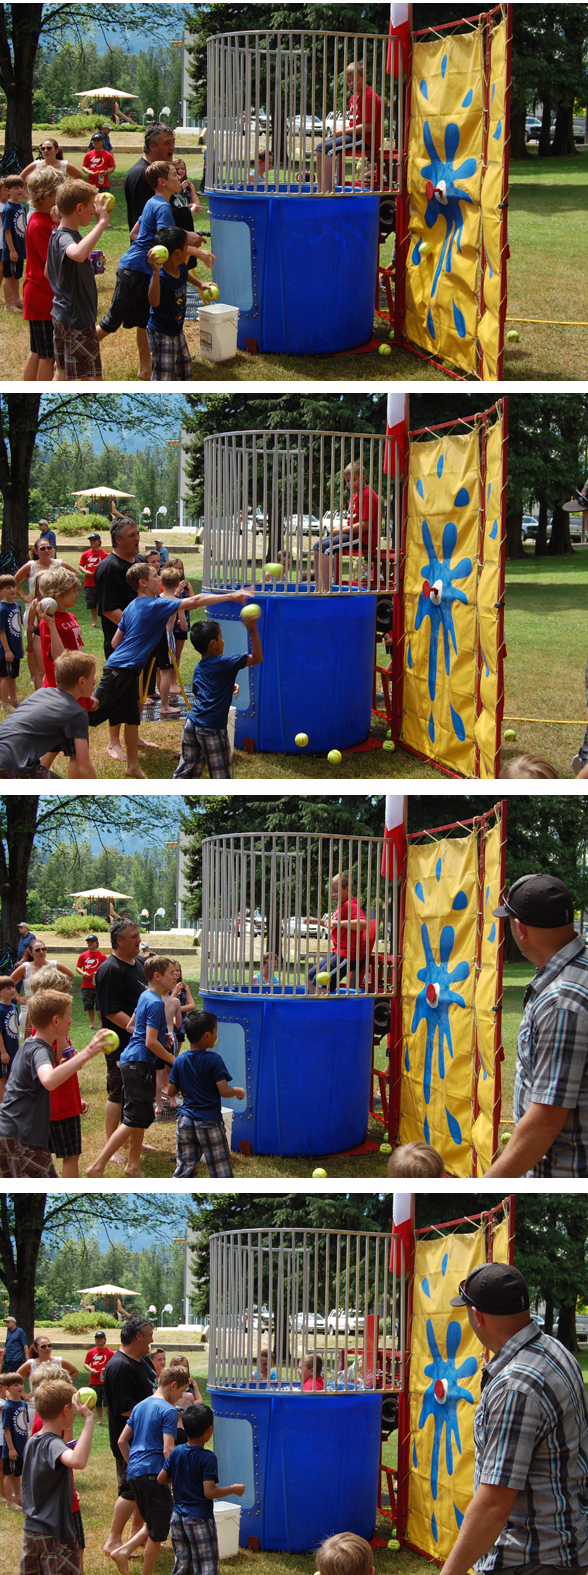 The older kids, meanwhile gravitated towards the dunk tank and an opportunity to try and dump someone into the tank with just the right toss of ball. David F. Rooney photo